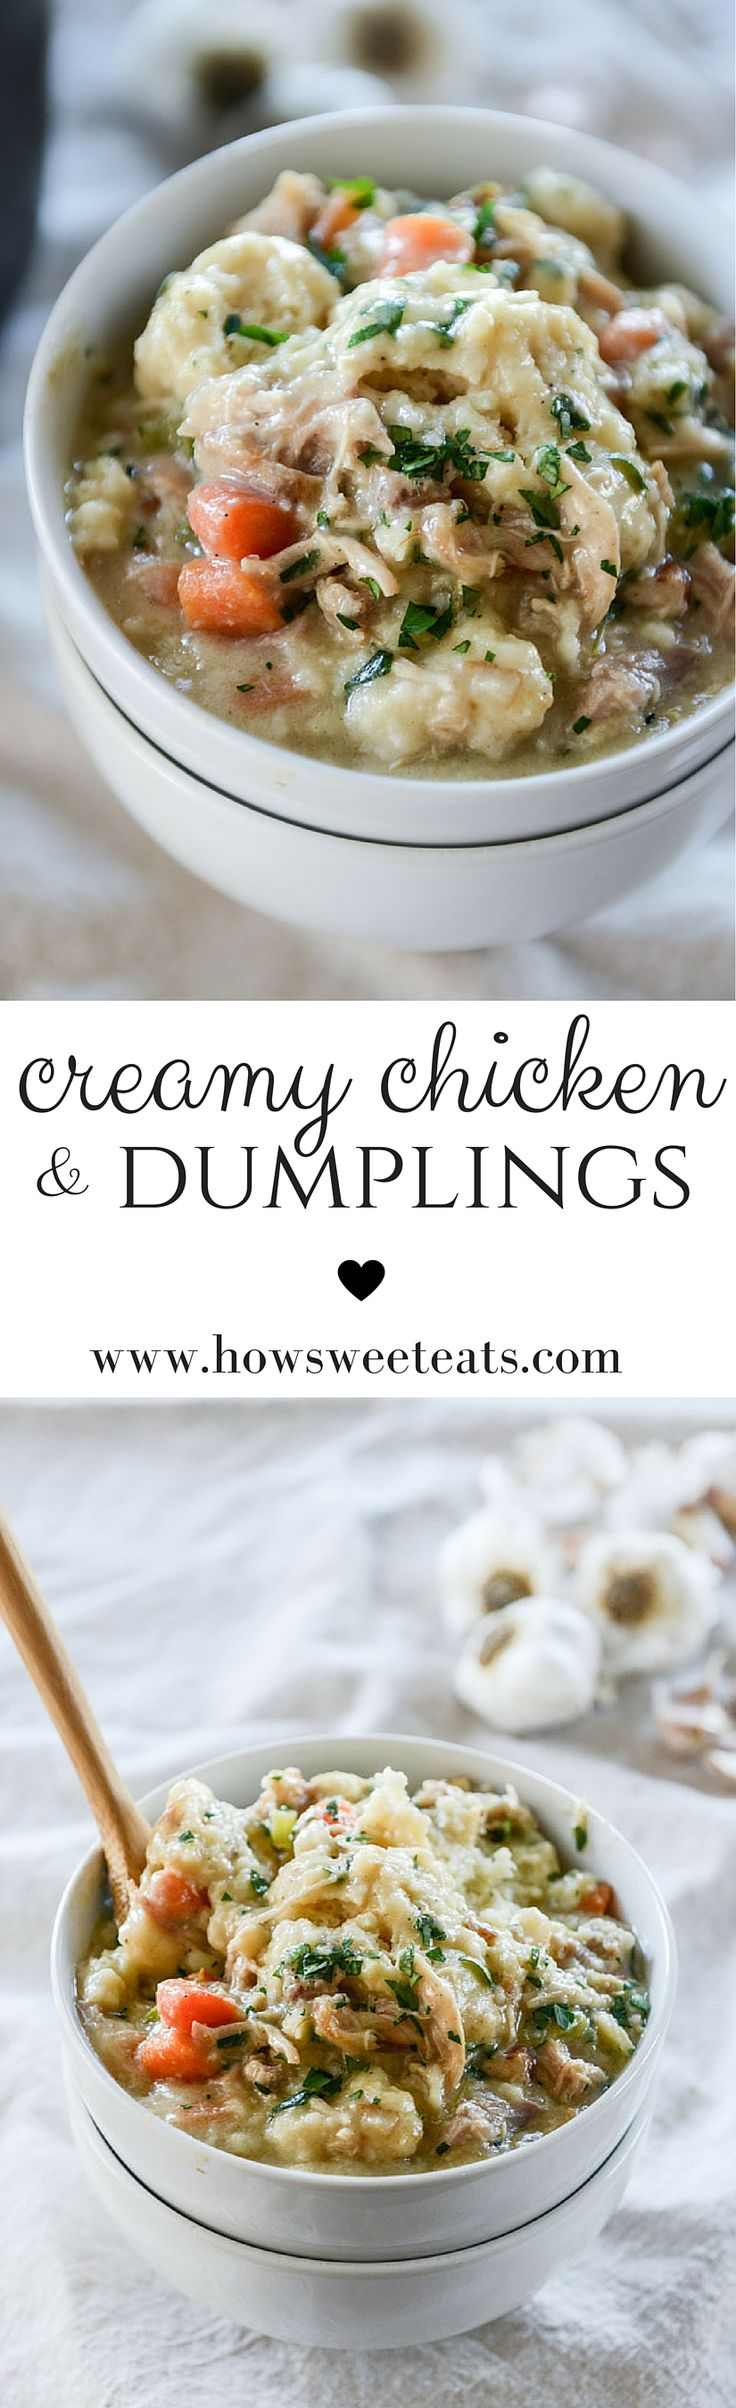 Creamy Chicken and Dumplings by @howsweeteats I howsweeteats.com